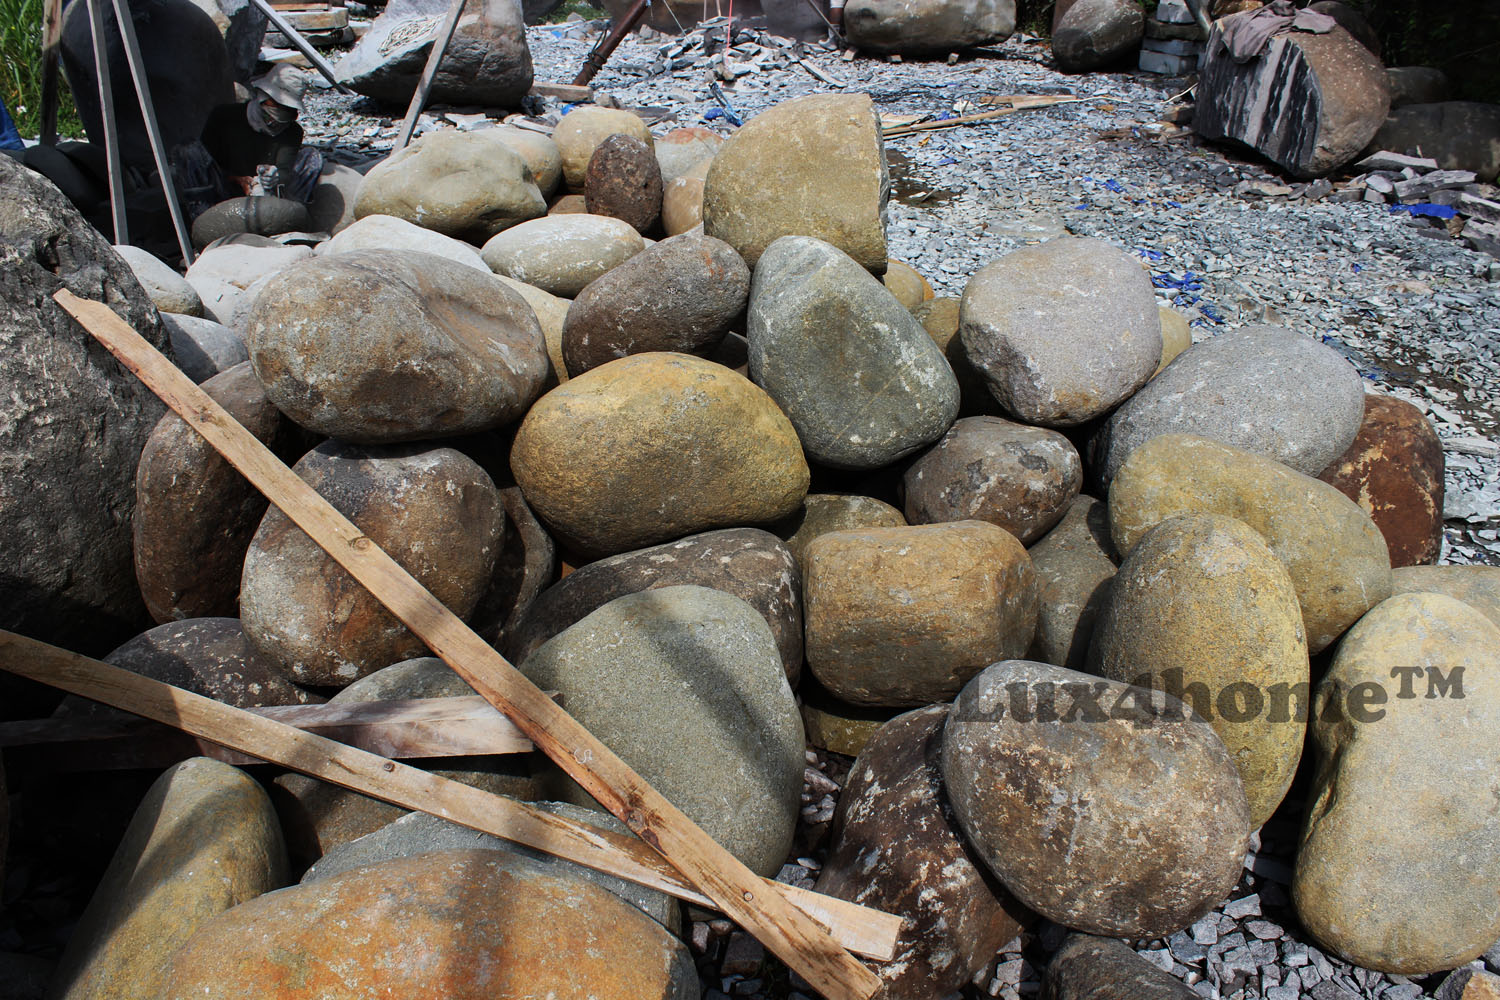 River stone sinks producer Indonesia